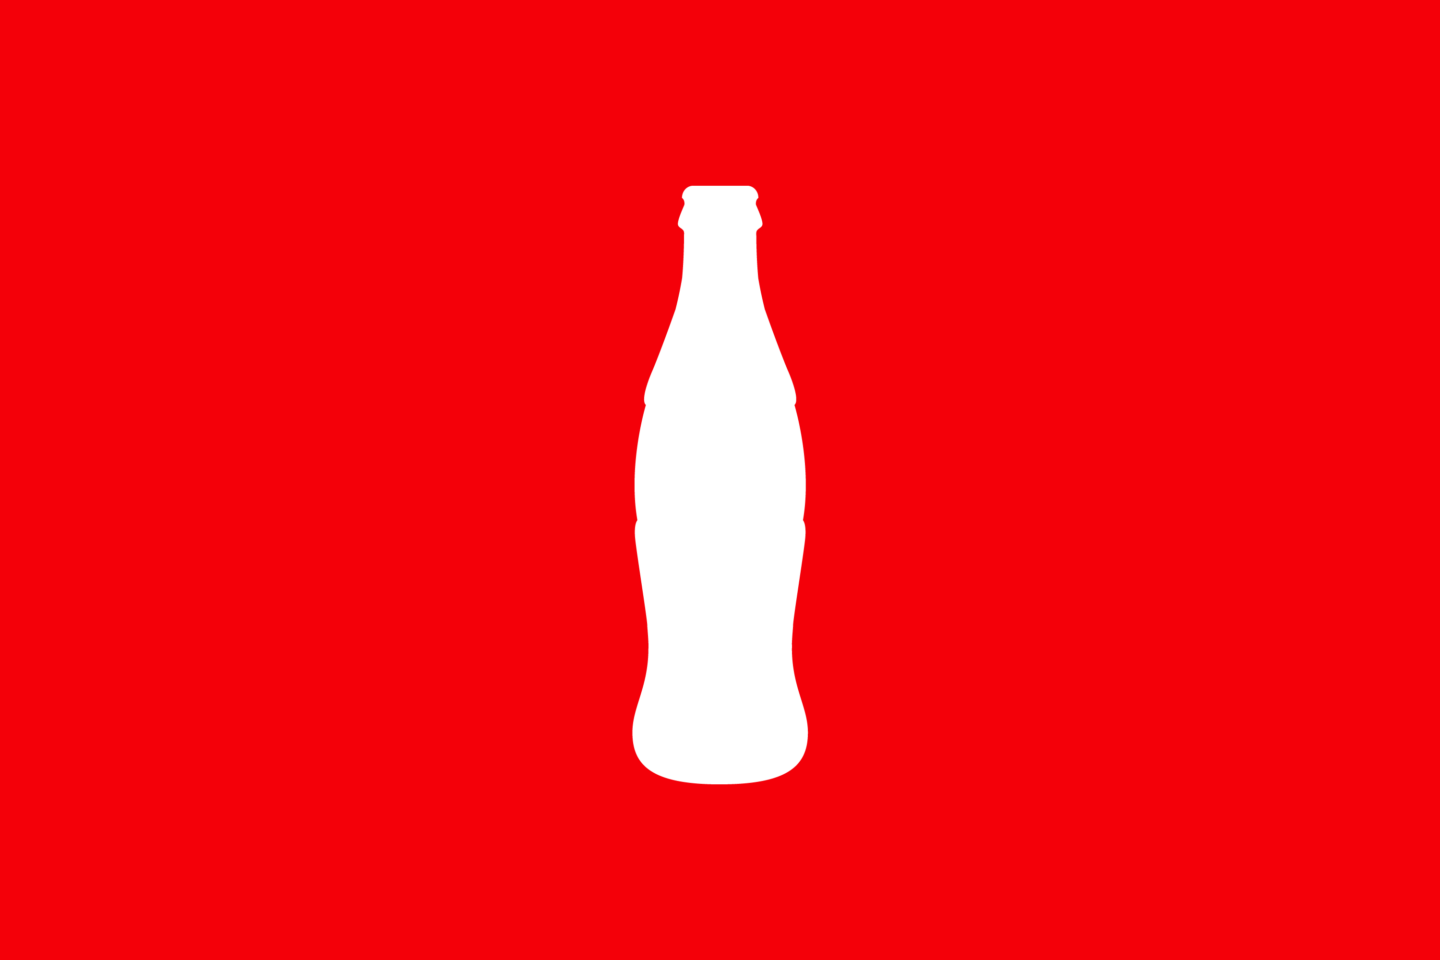 coca-cola silhouette as an example of strong branding